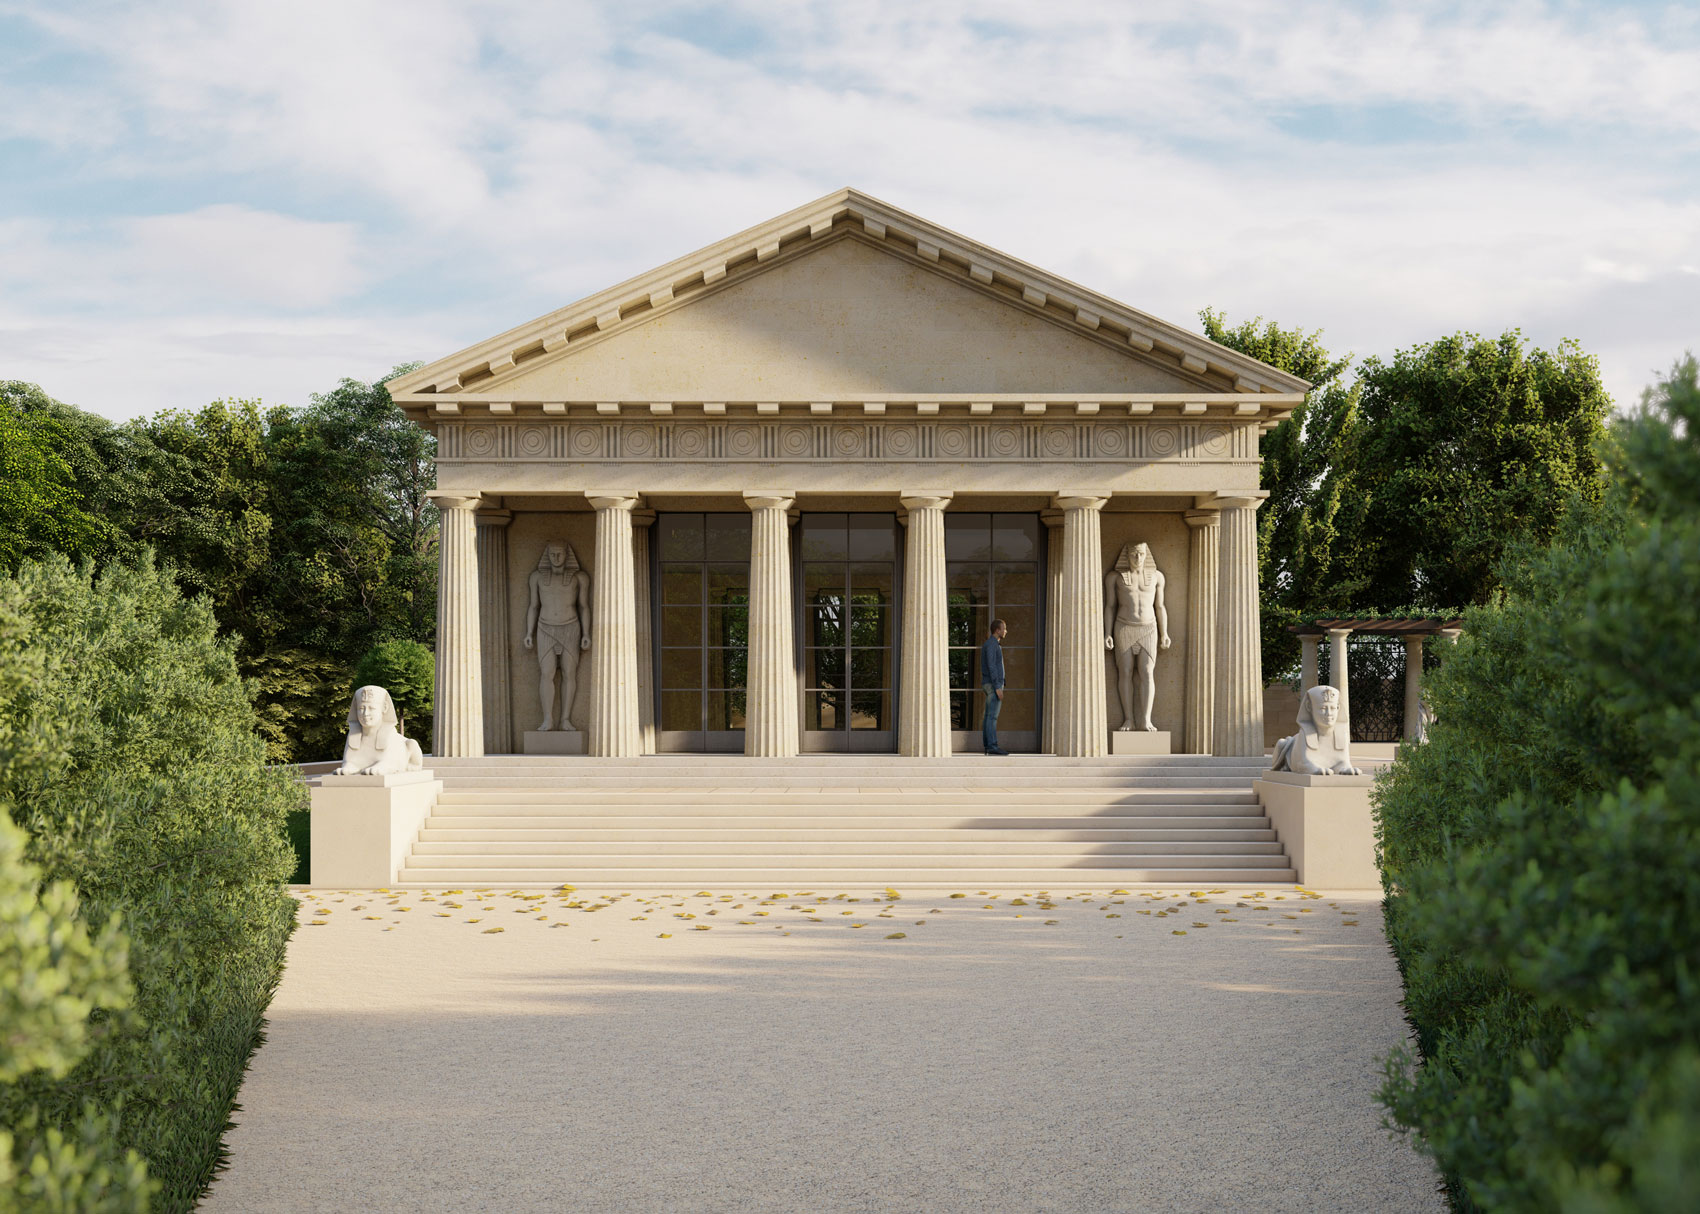 heres-stonemason-new-classical-architecture-catalogue-maison-a-construire